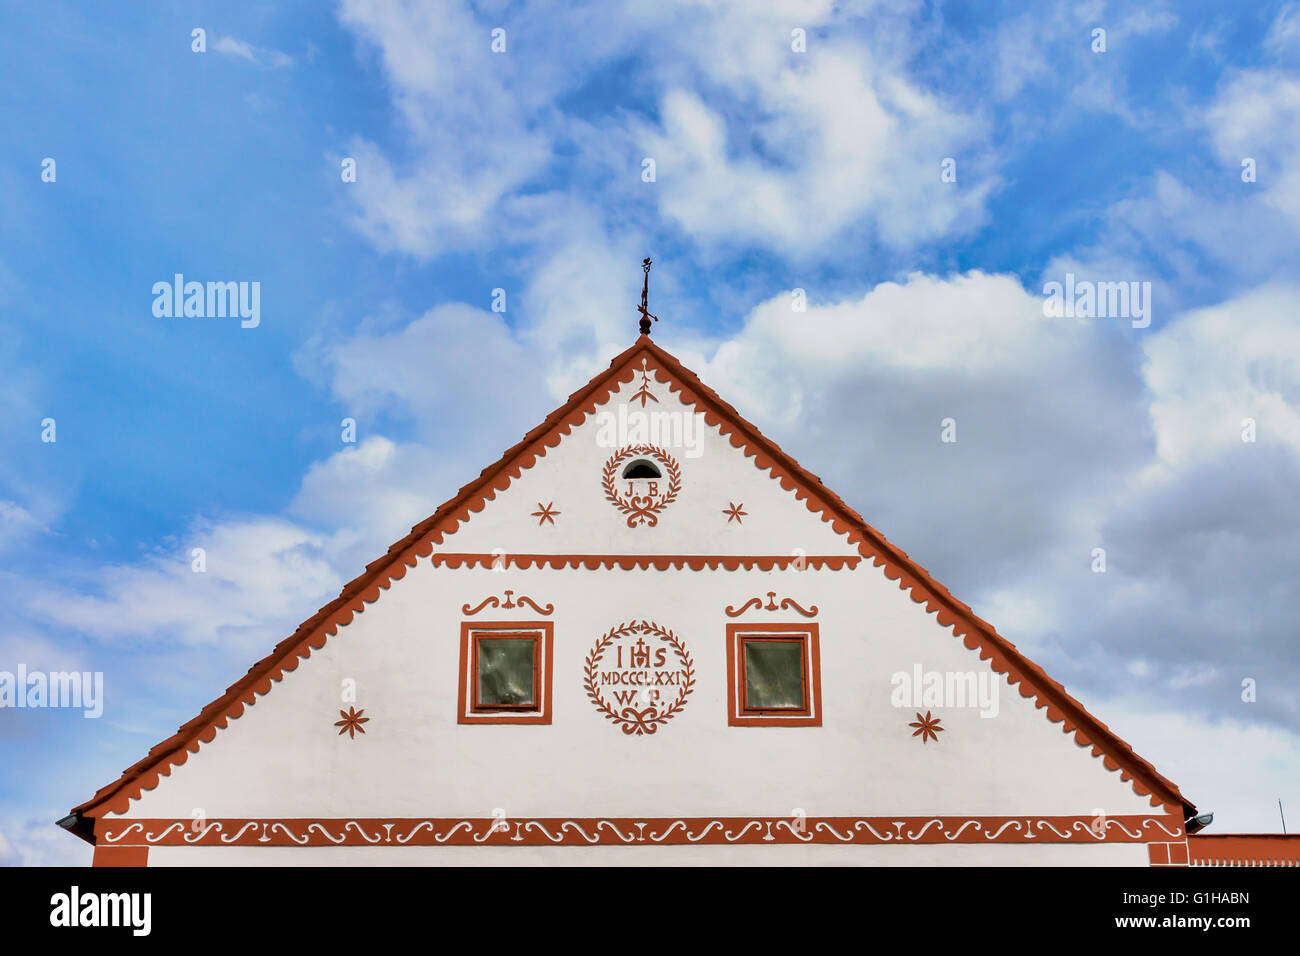 Czech Republic - UNESCO village Holasovice in South Bohemia - detail one old house - Stock Image